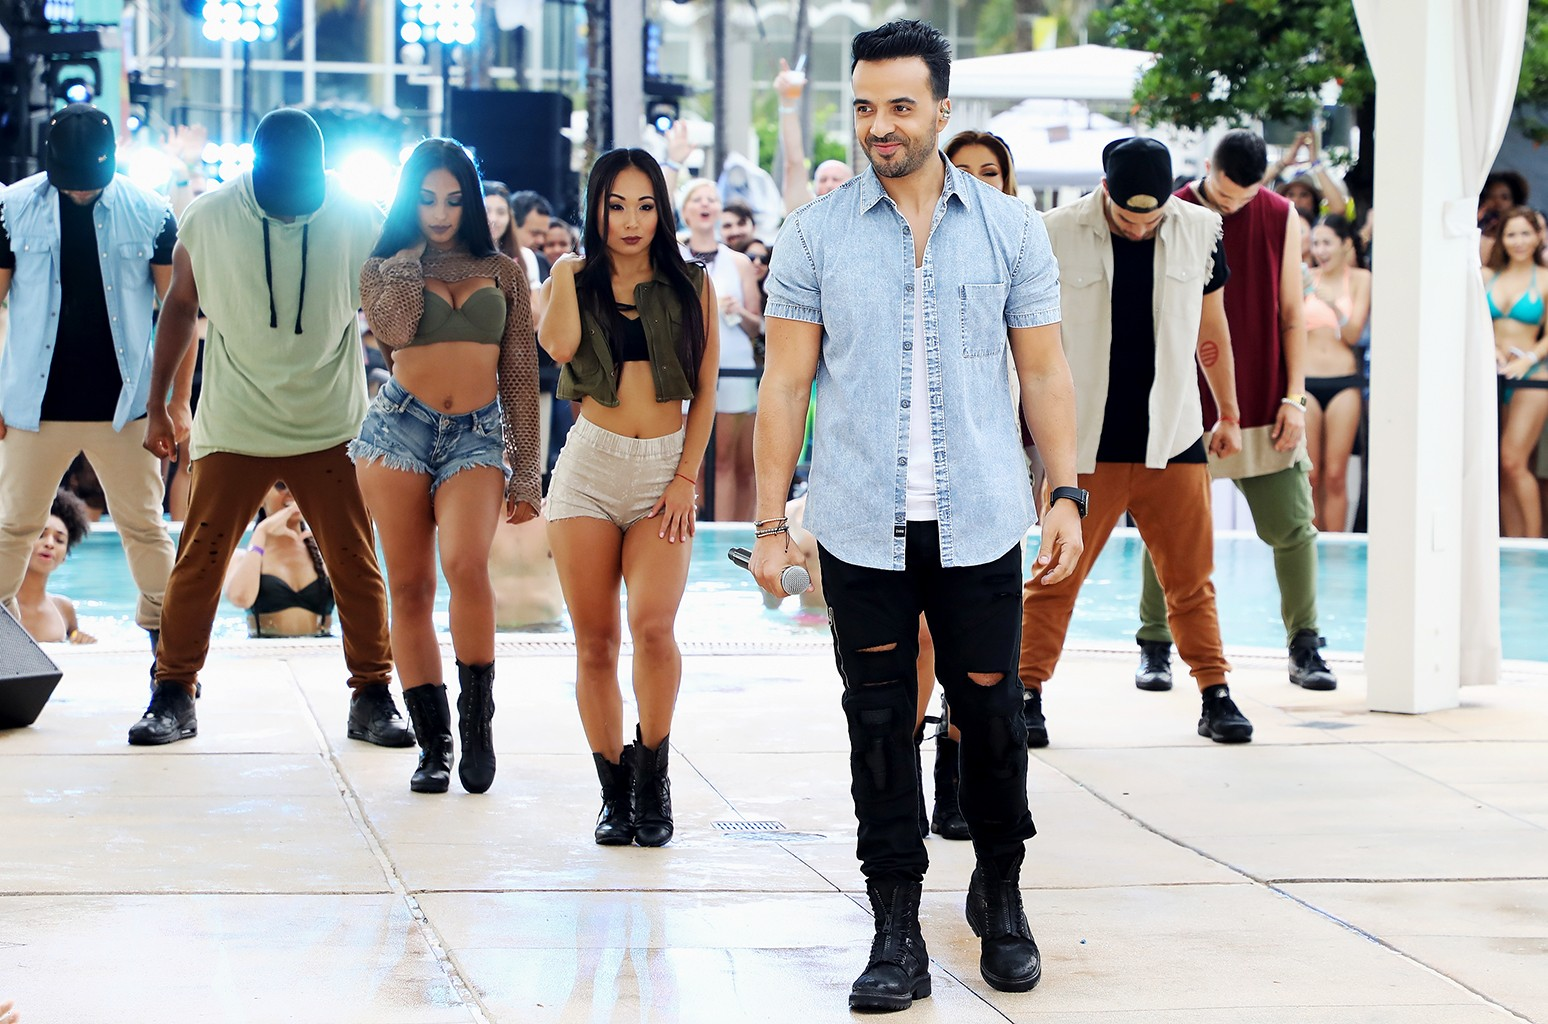 Luis Fonsi performs at the iHeartSummer '17 Weekend By AT&T, Day 1 at Fontainebleau Miami Beach on June 9, 2017 in Miami Beach, Fla.